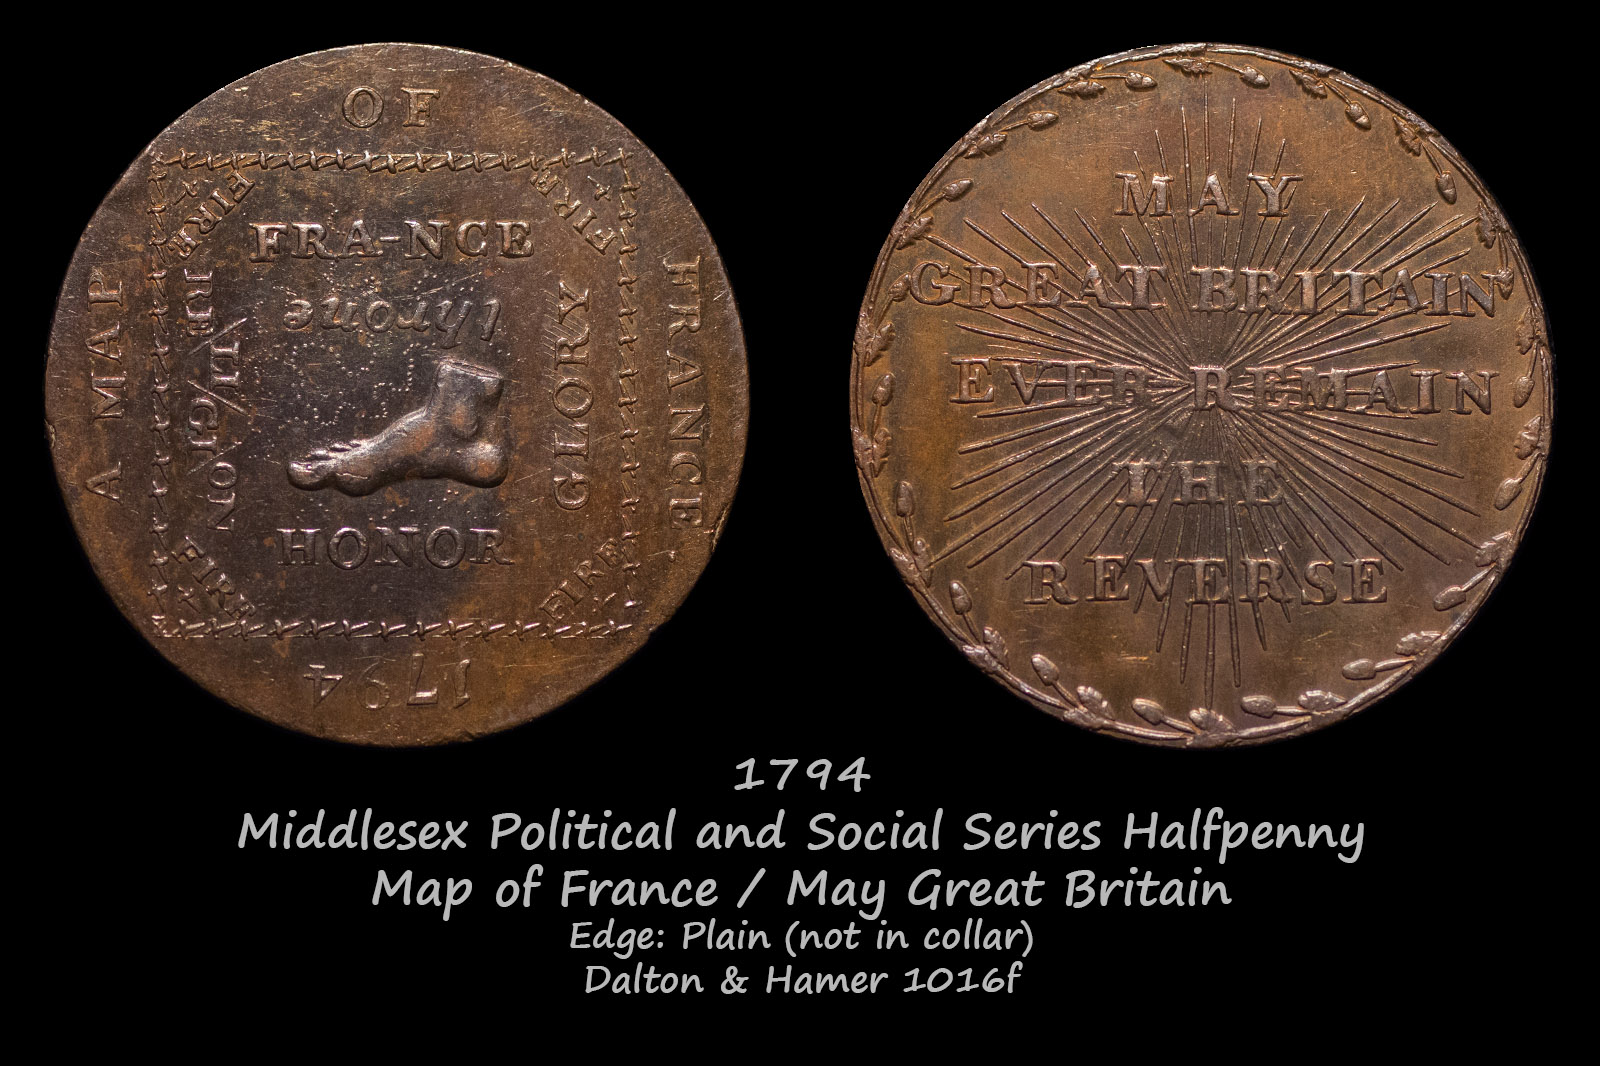 Middlesex Political and Social Series Halfpenny D&H1016f